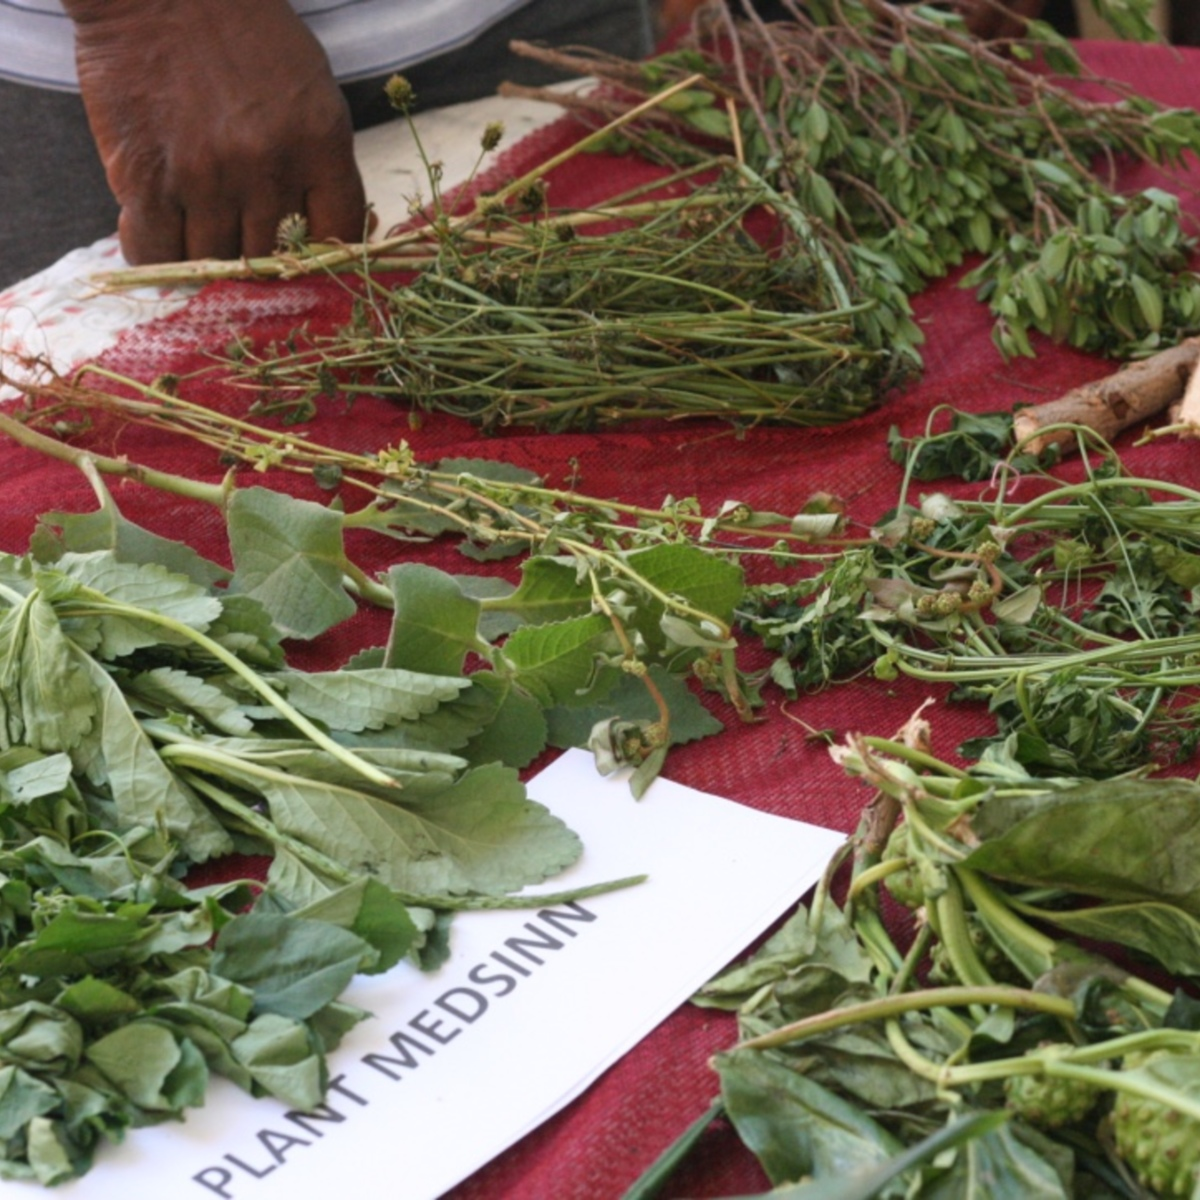 Medicinal plants demonstration